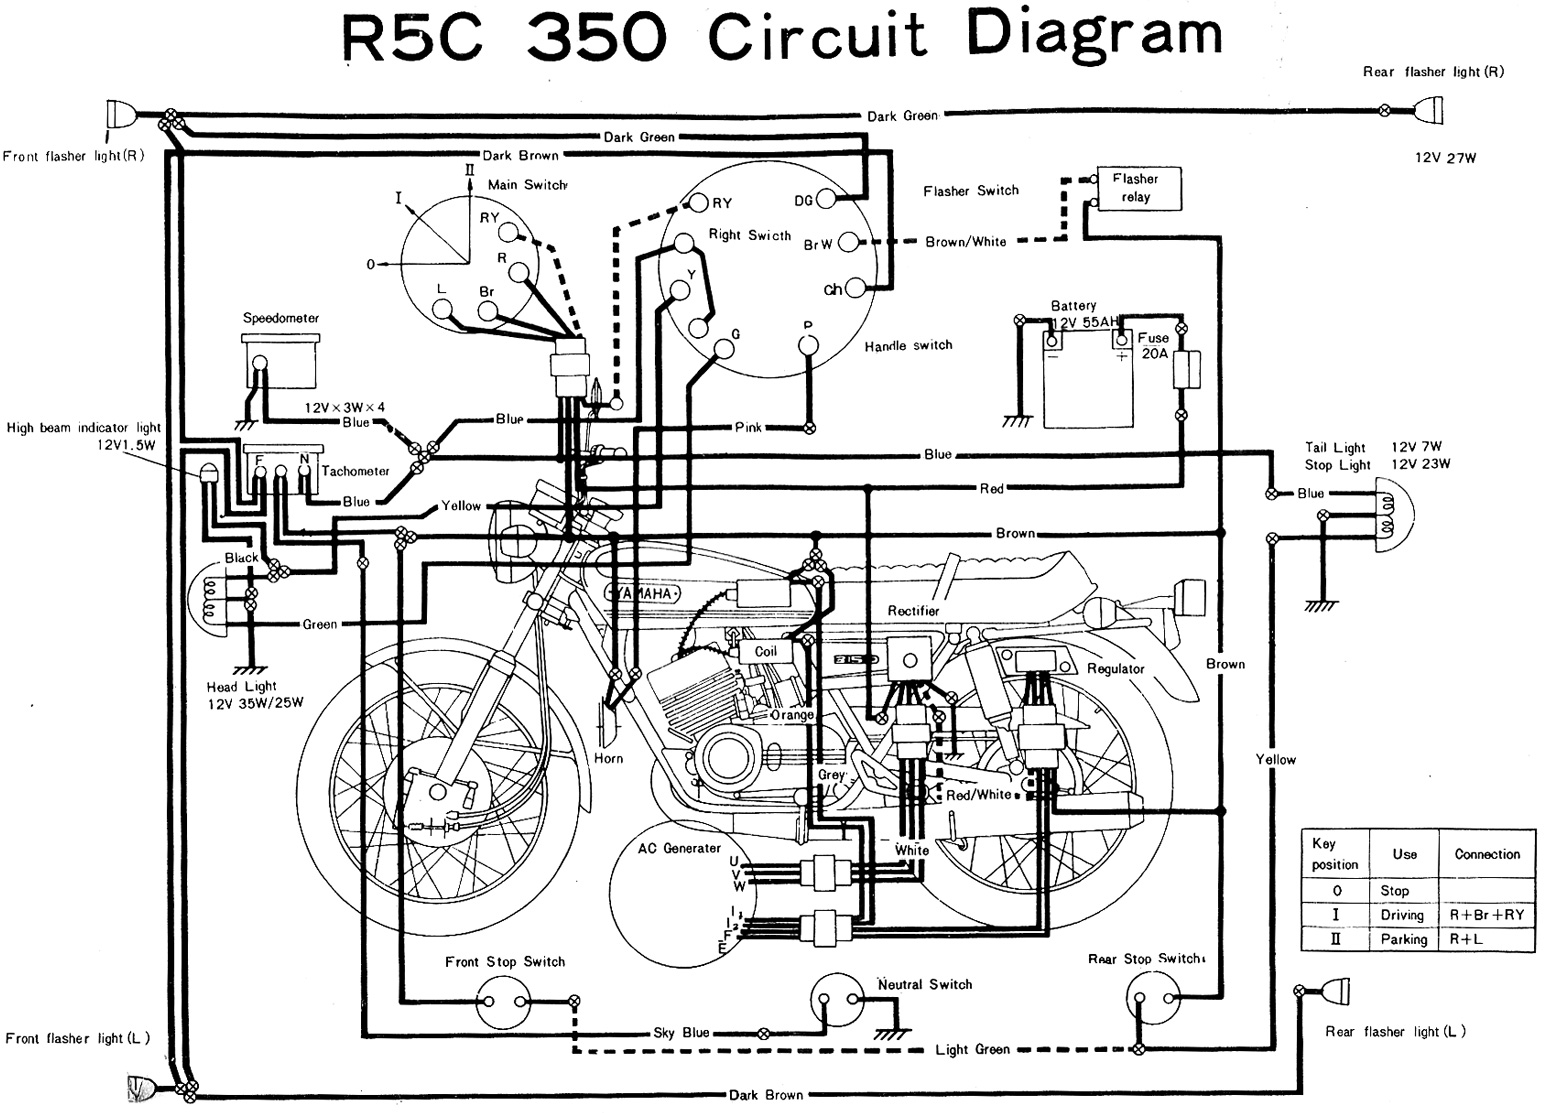 Yamaha R5C 350 Electrical Wiring Diagram1 motorcycle wiring diagrams simple motorcycle wiring diagram at panicattacktreatment.co